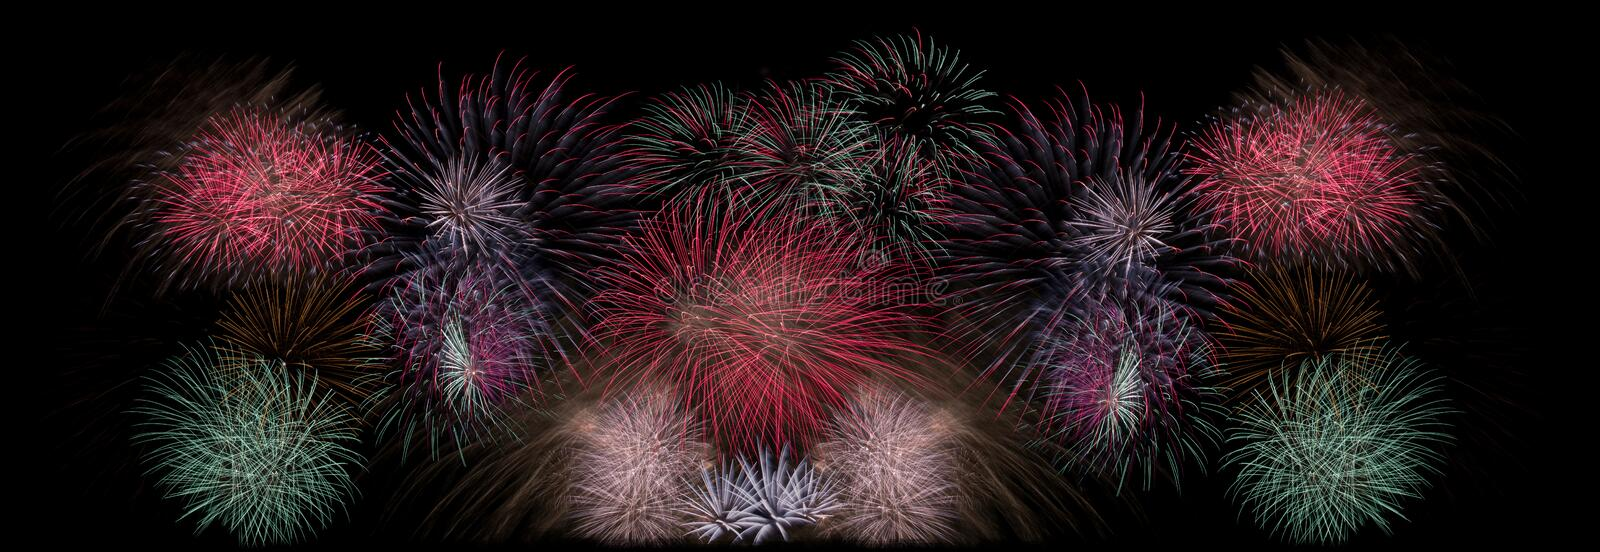 Many blasts and flashes of fireworks stock photo